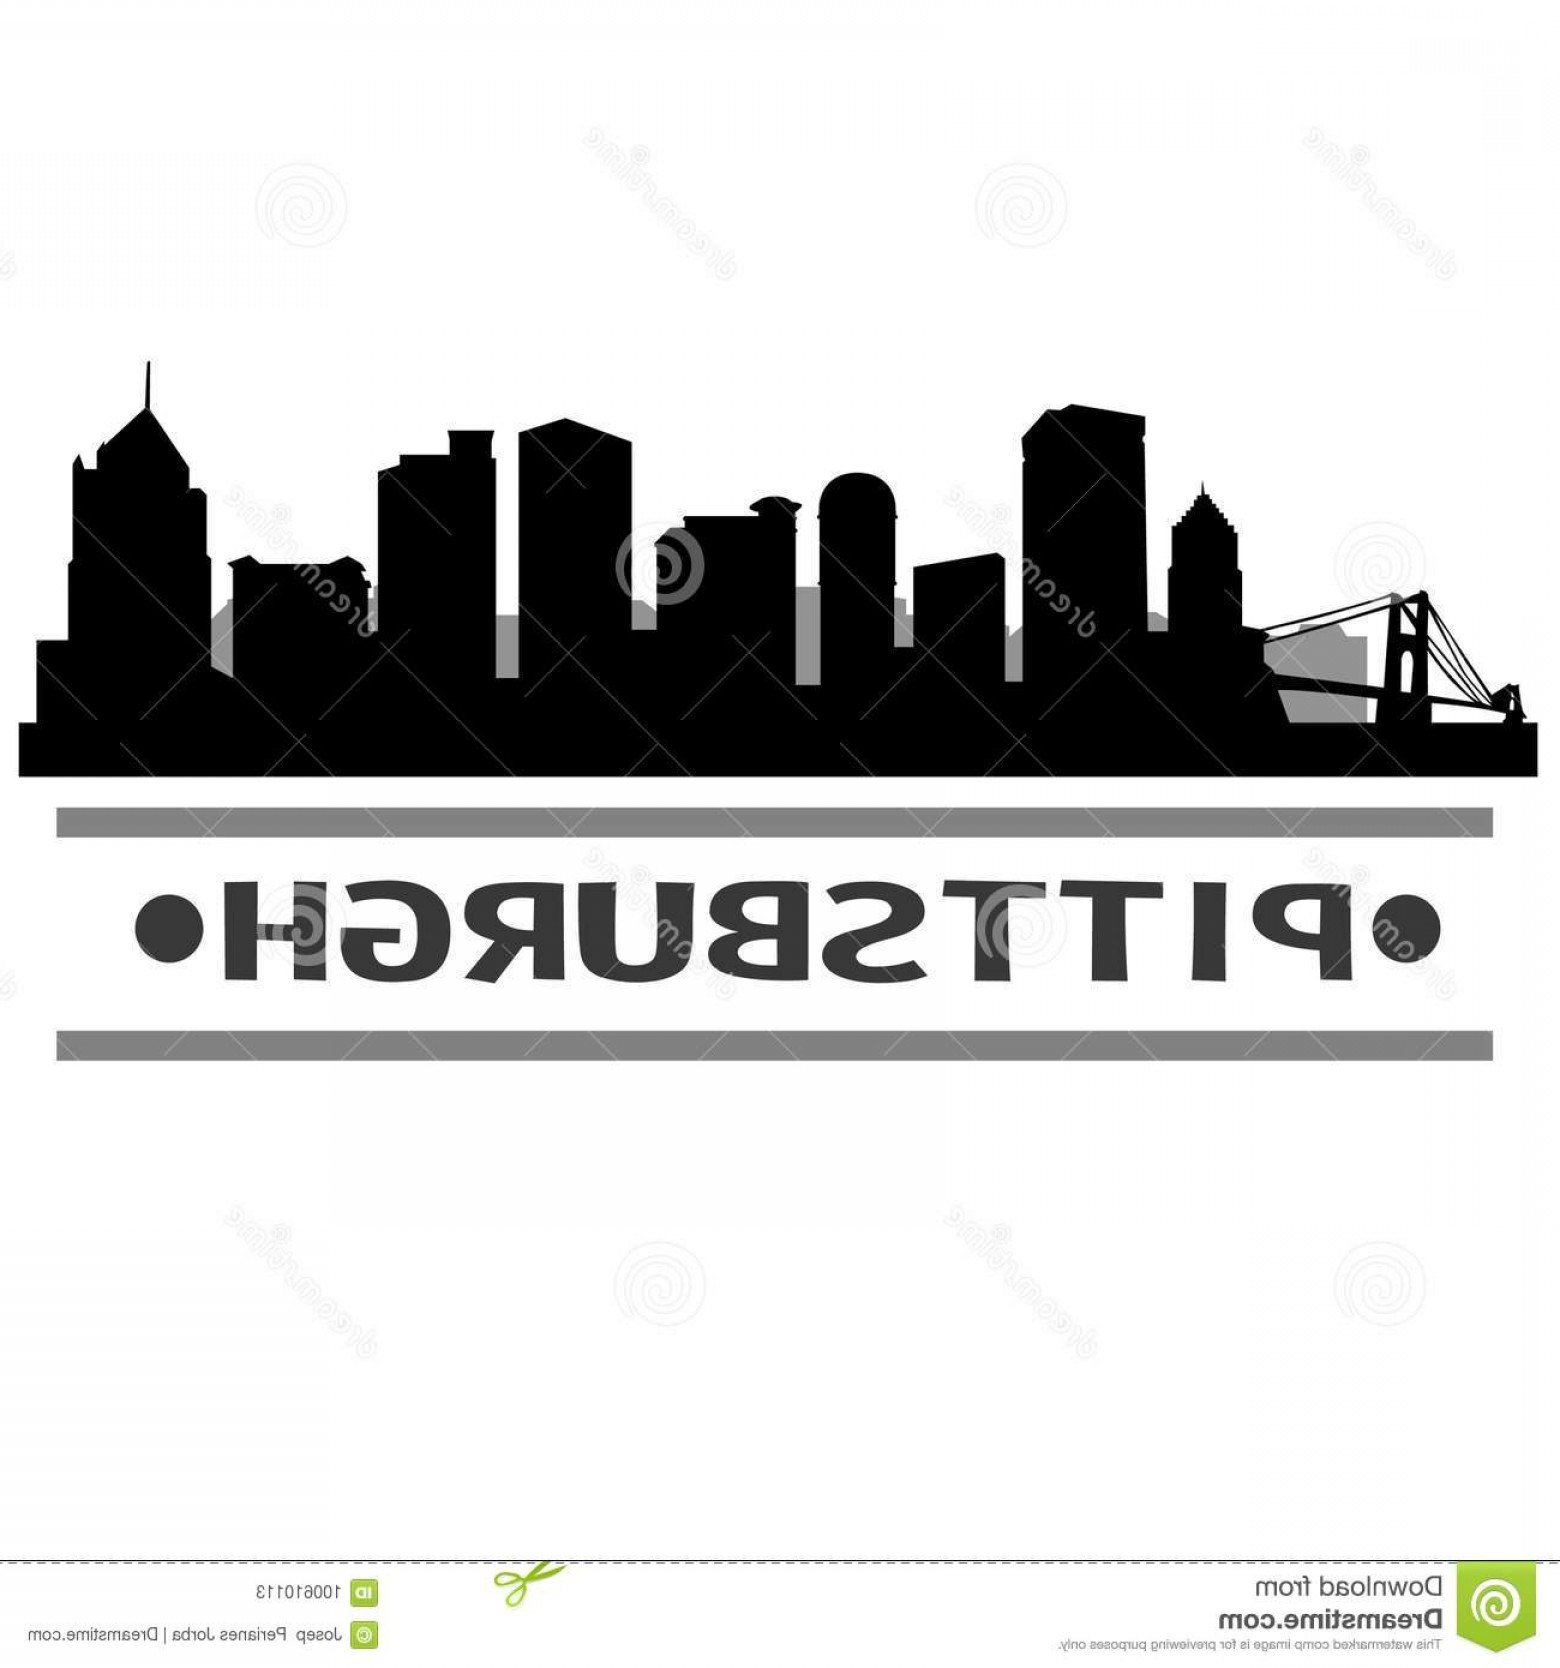 Pittsburgh City Skyline Vector: Pittsburgh Skyline City Icon Vector Art Design Emblematic Buildings Image